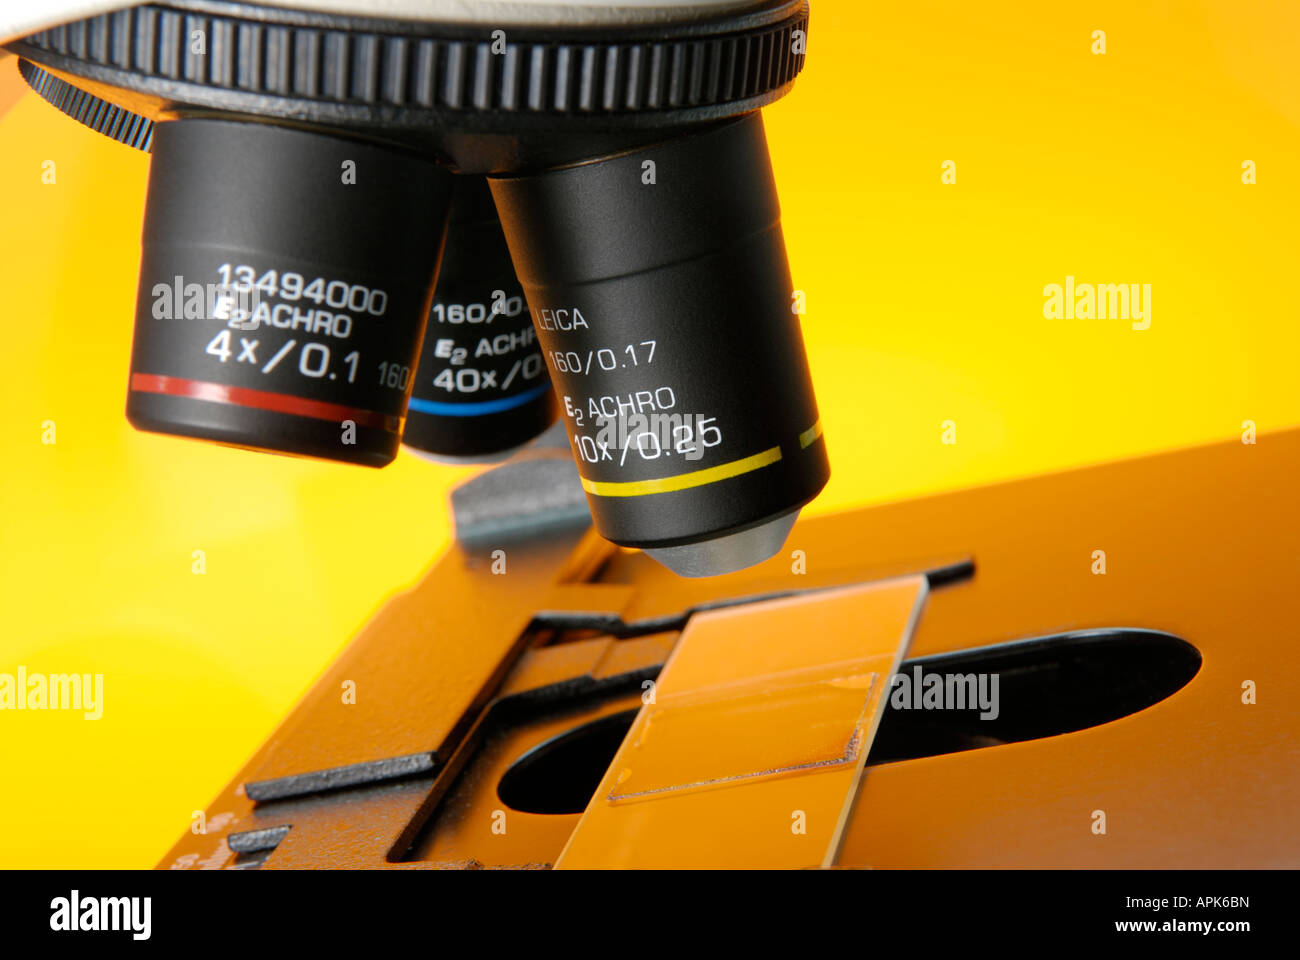 Close up of a microscope in a research lab showing the objective lenses and a slide - Stock Image